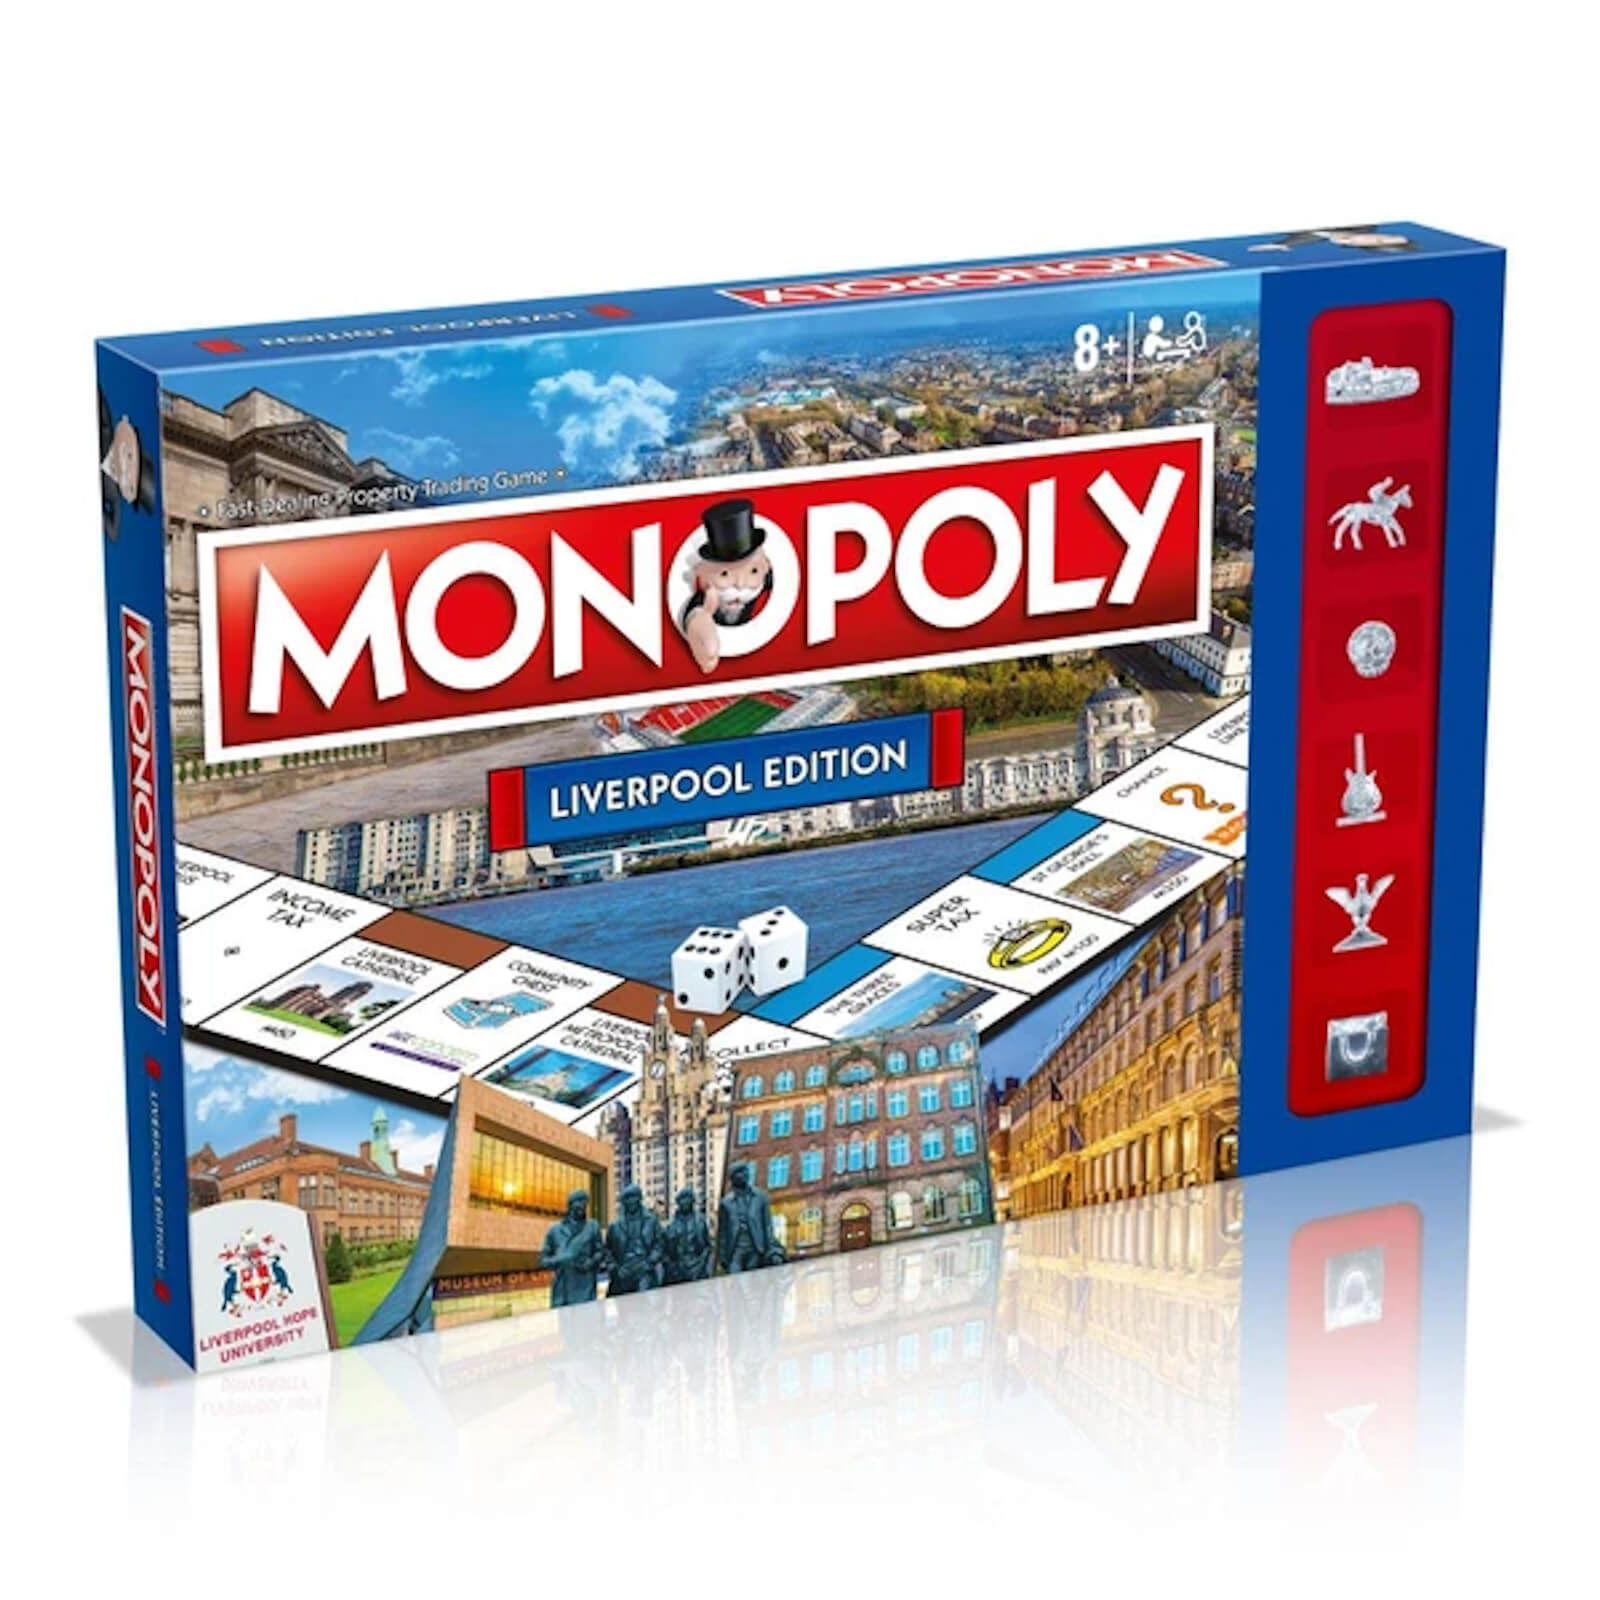 Image of Monopoly Board Game - Liverpool Edition